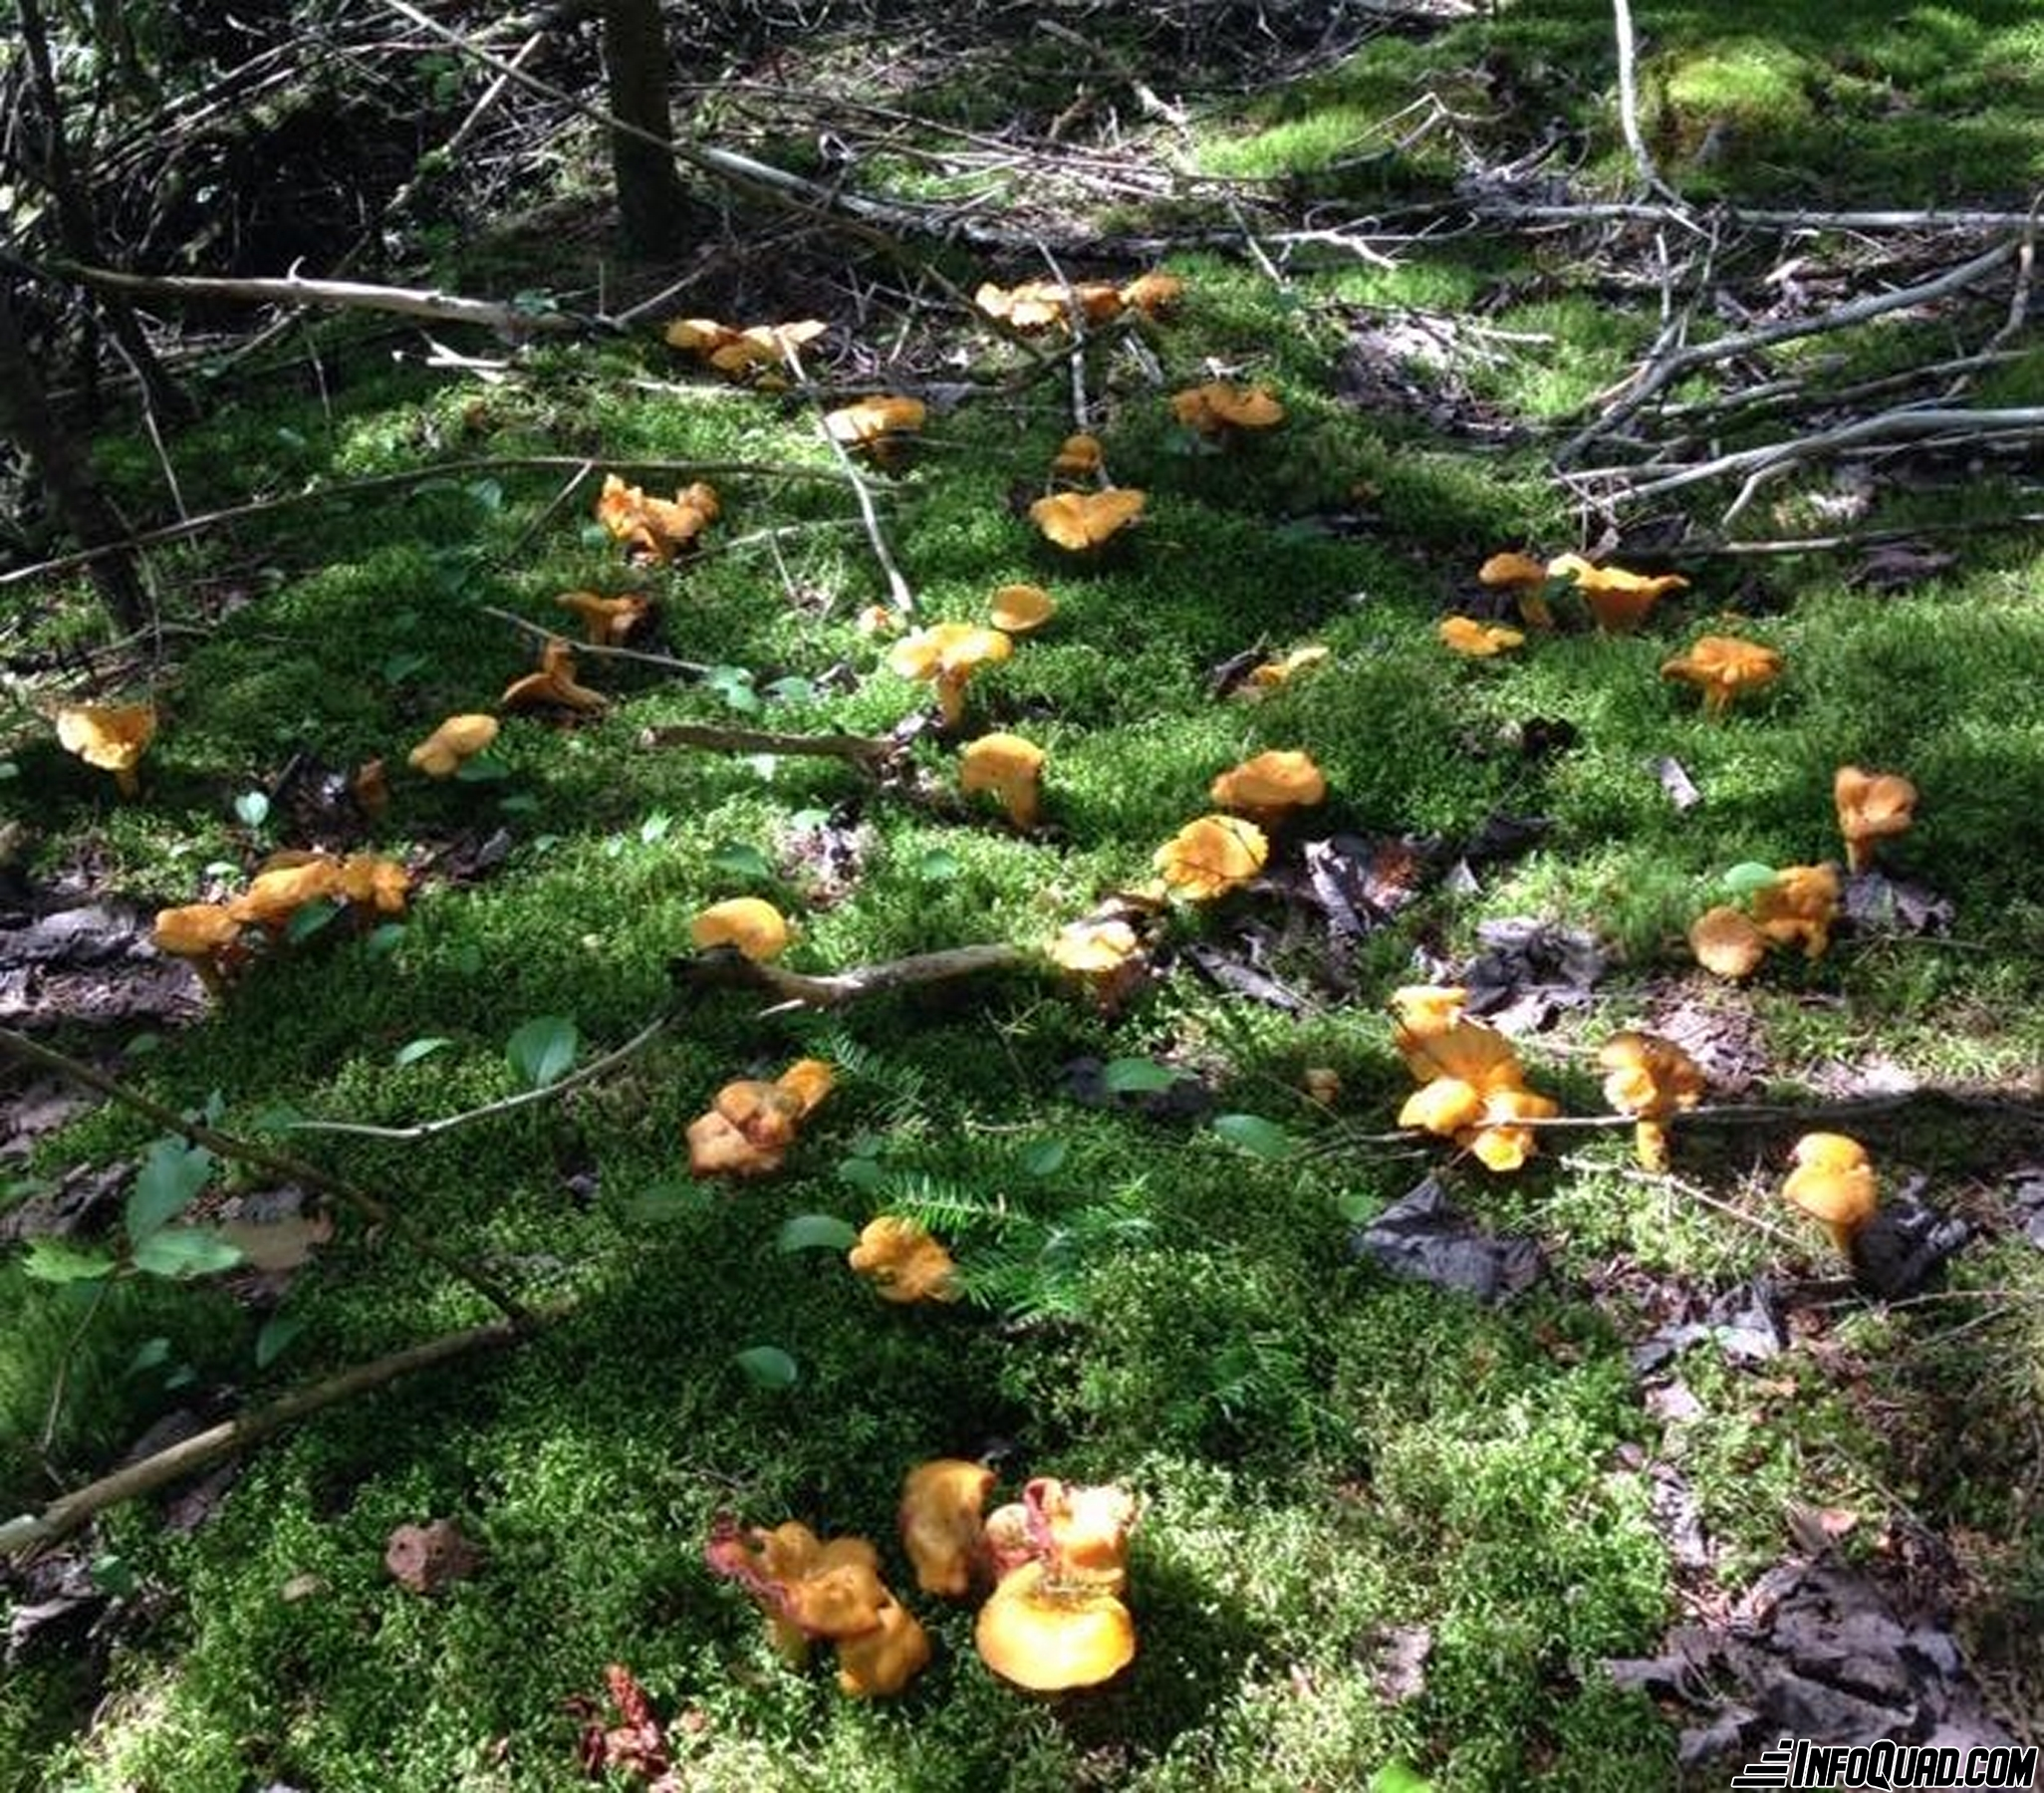 Taste the pleasures of the Quad: mycology on the trail